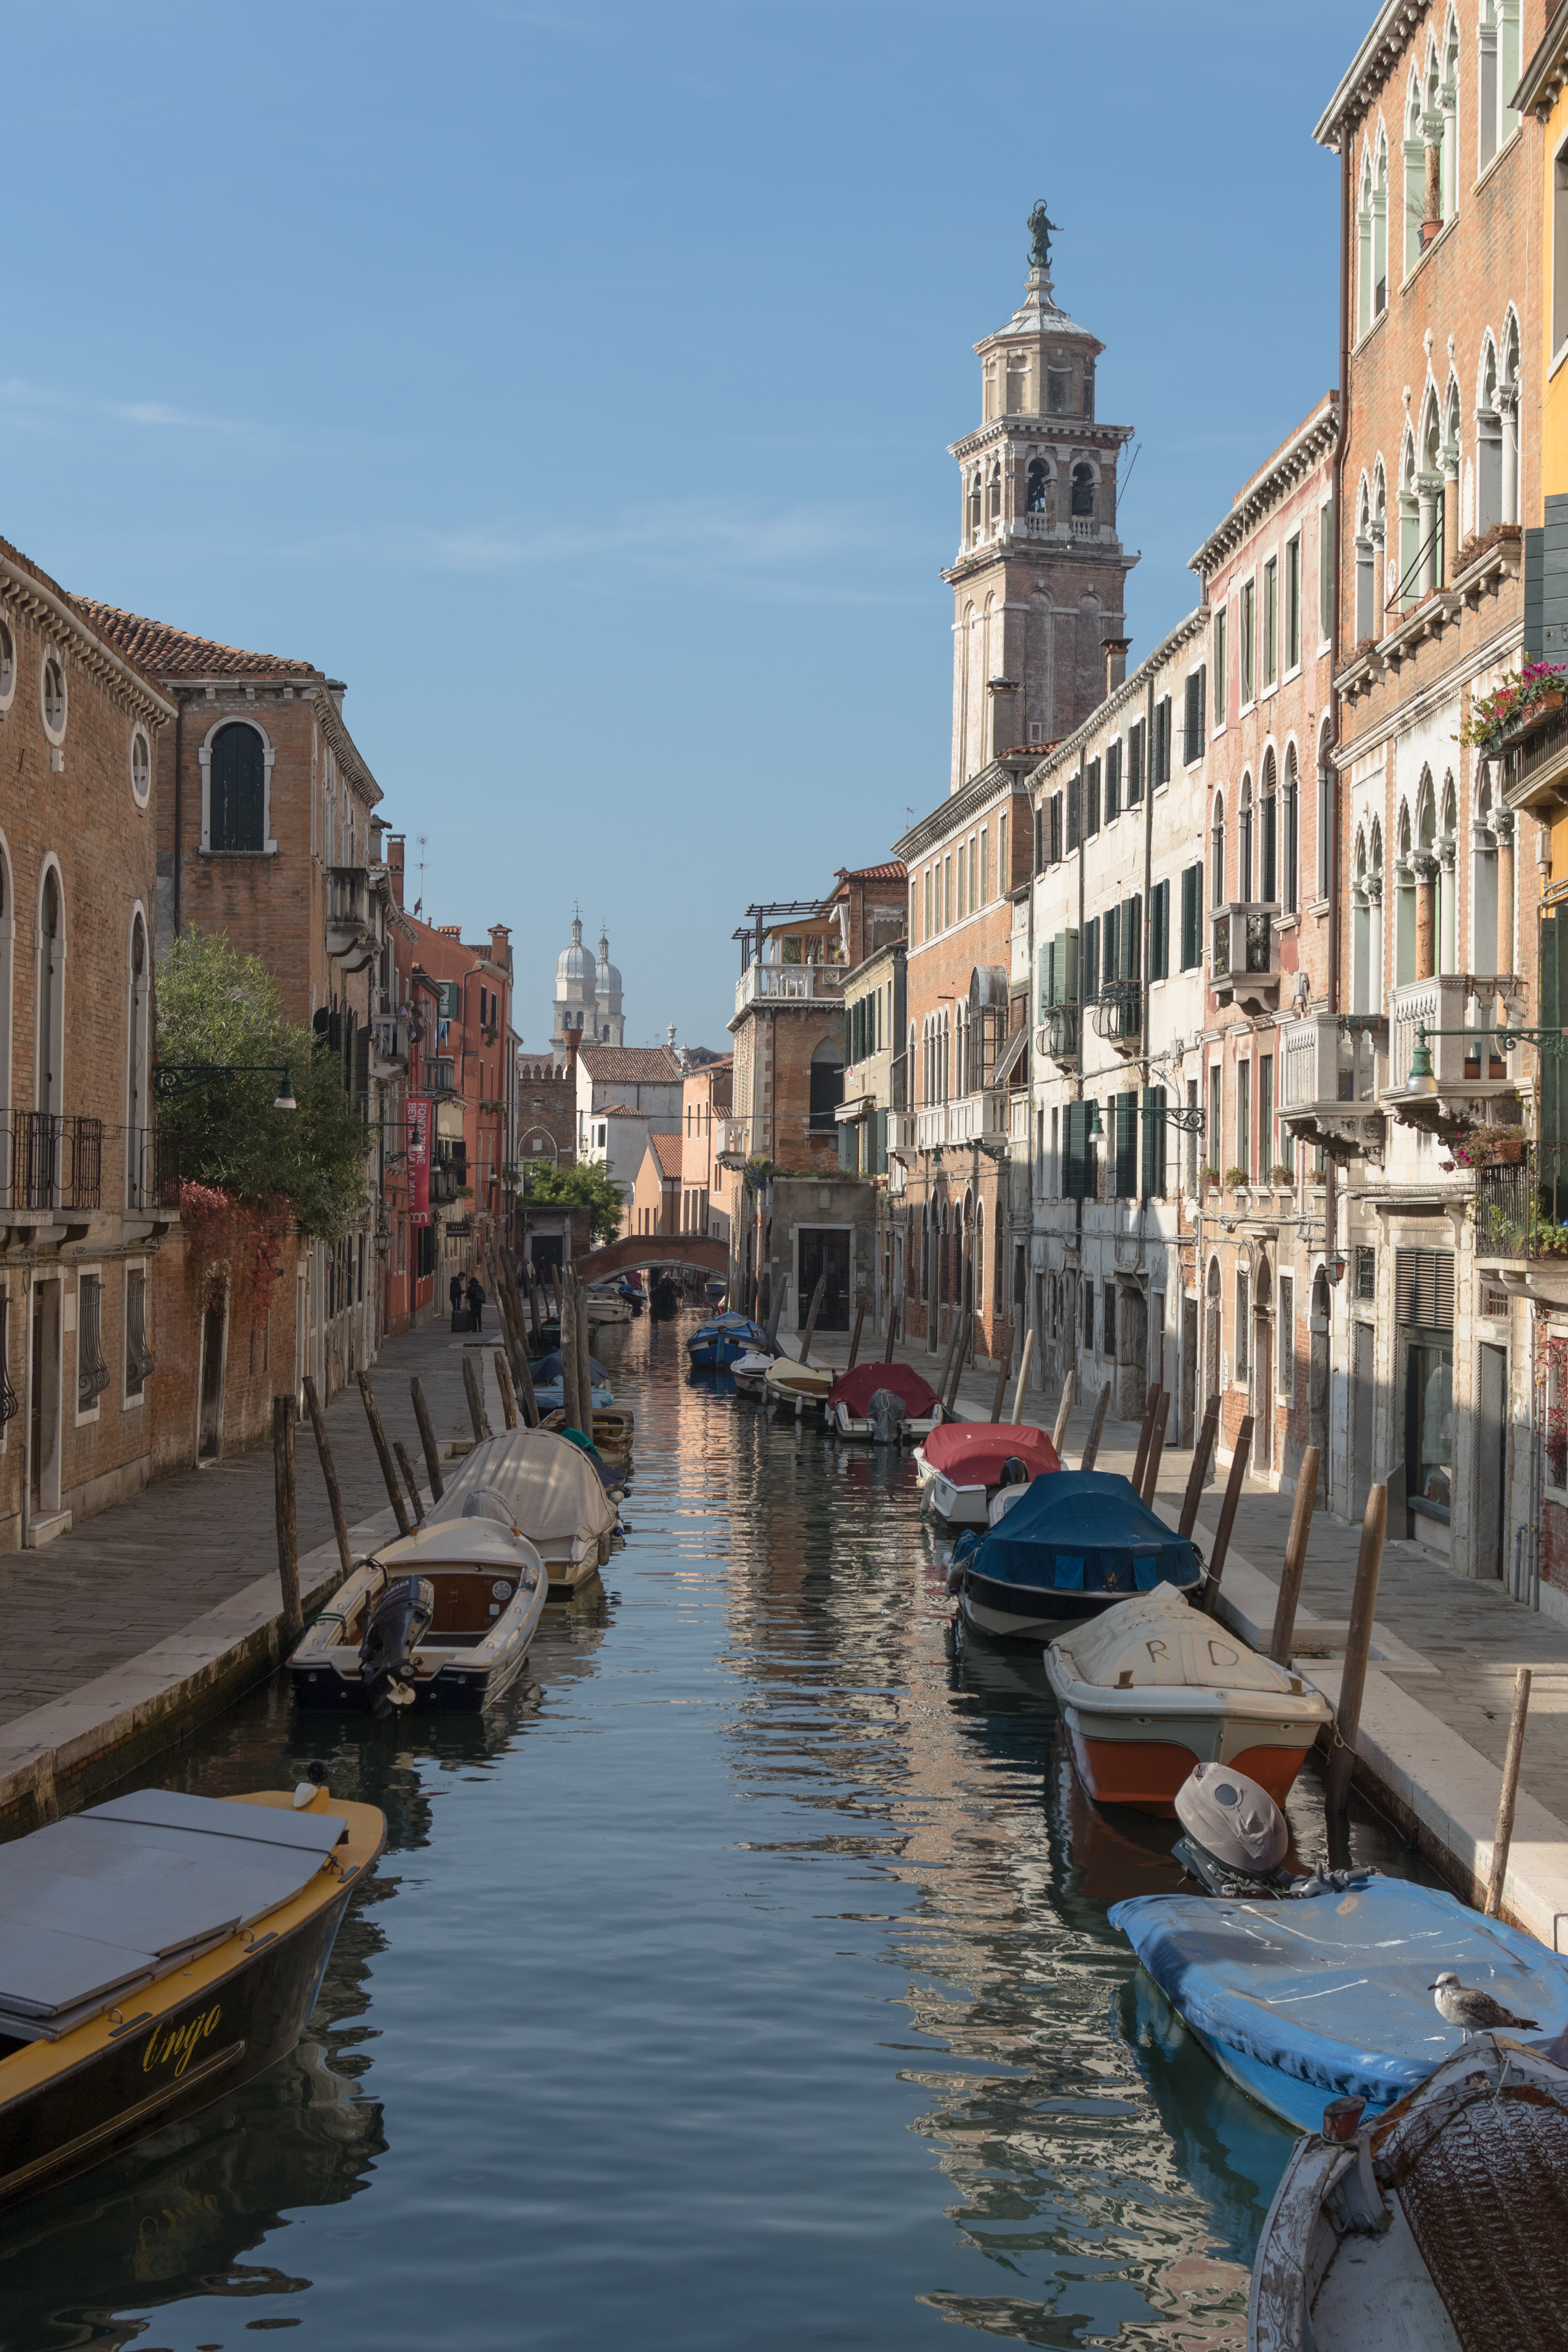 Characteristic Canals.